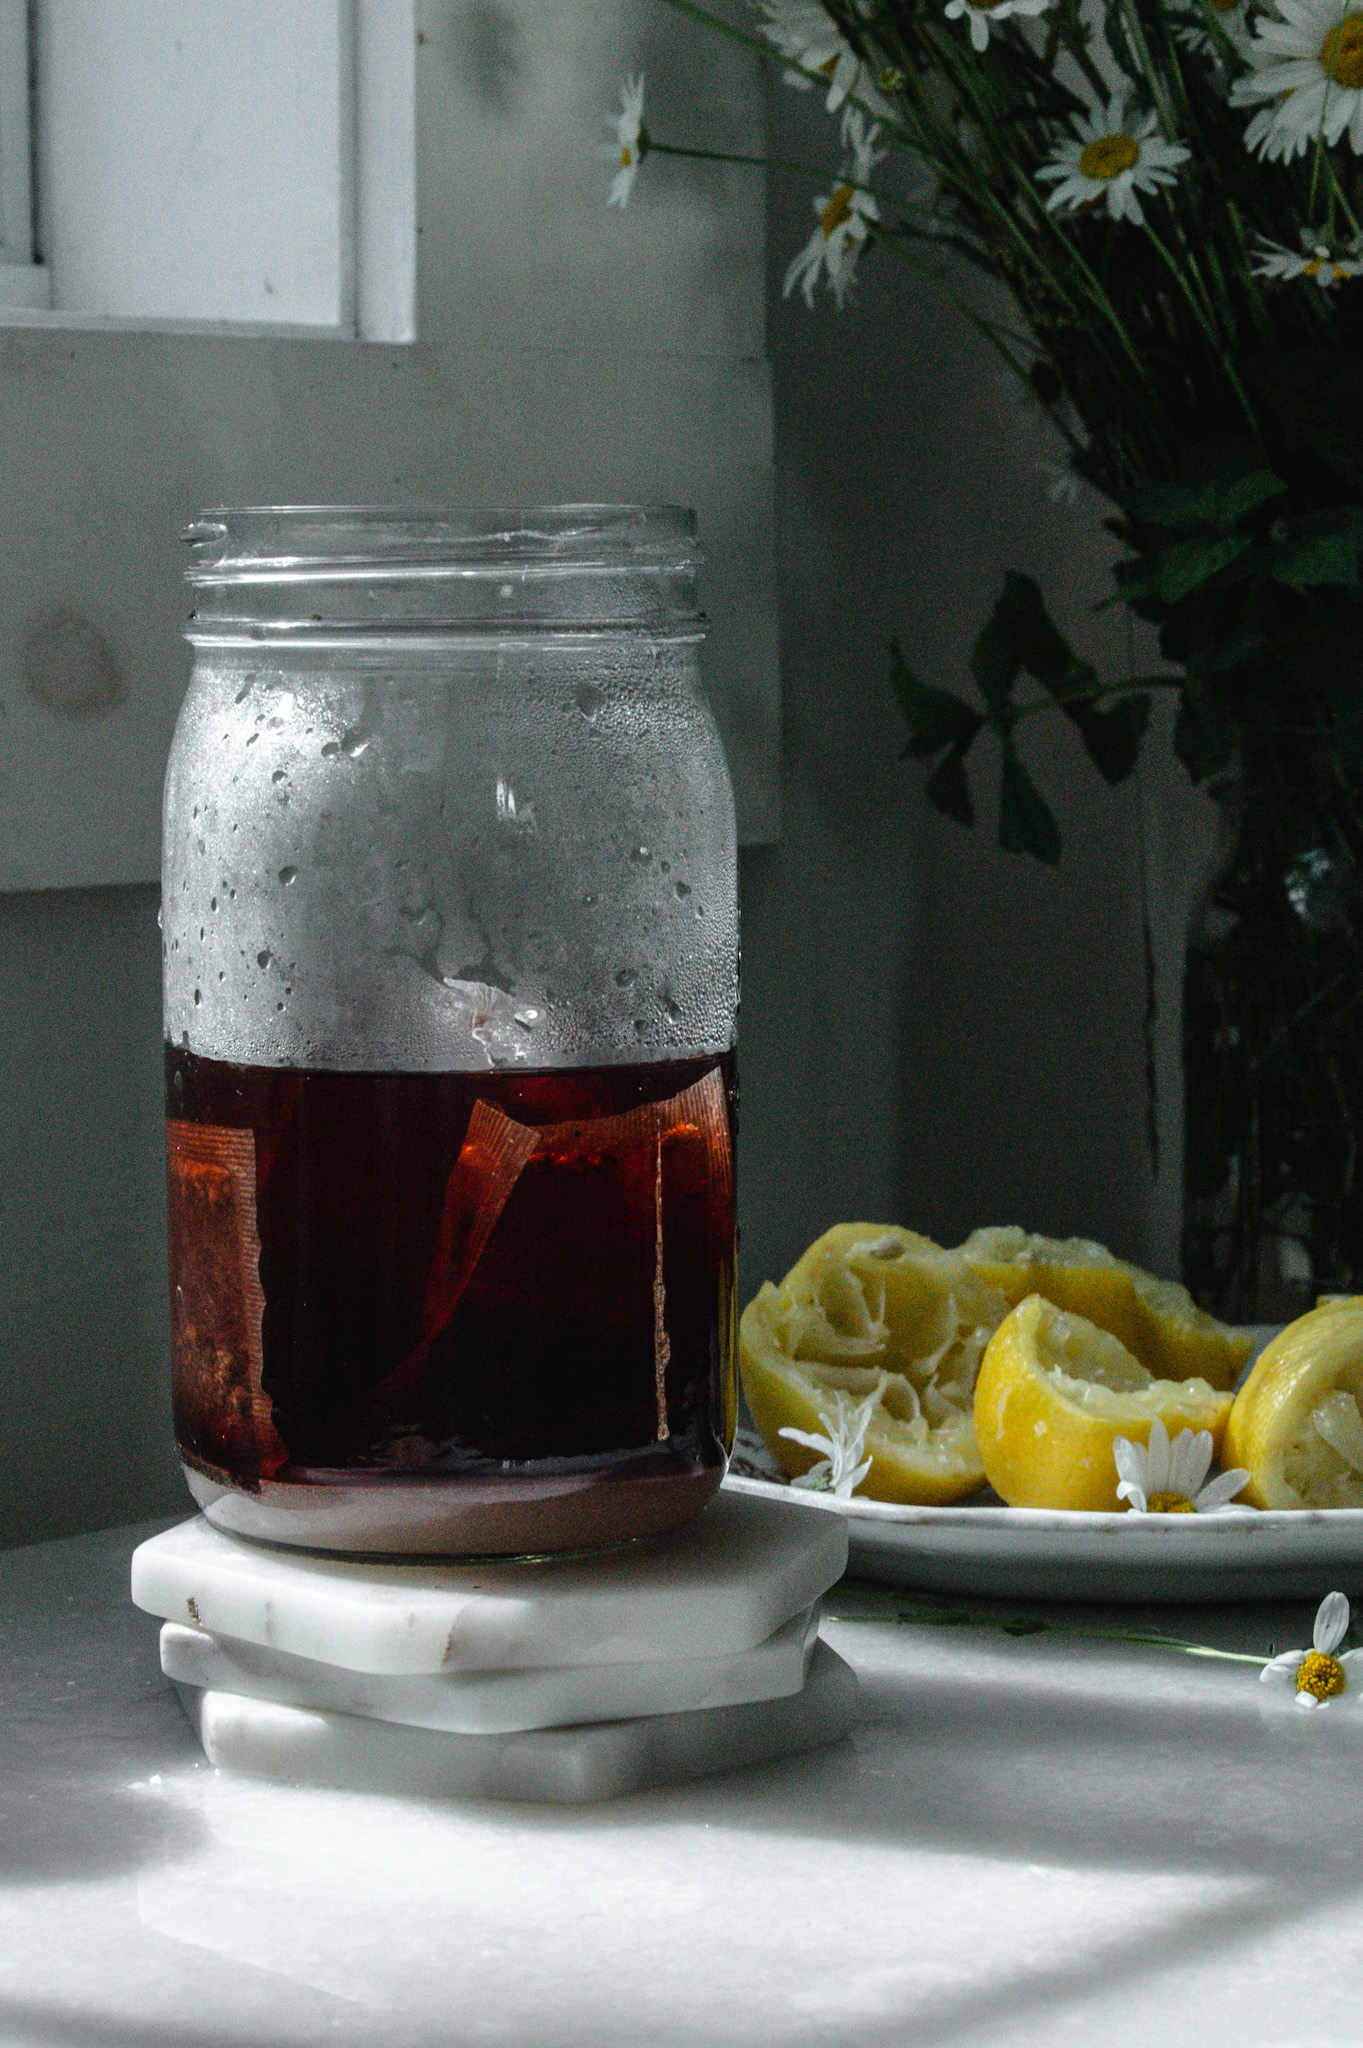 We start by making a highly concentrated tea using hot water raspberry herbal tea, sugar, and lemon juice